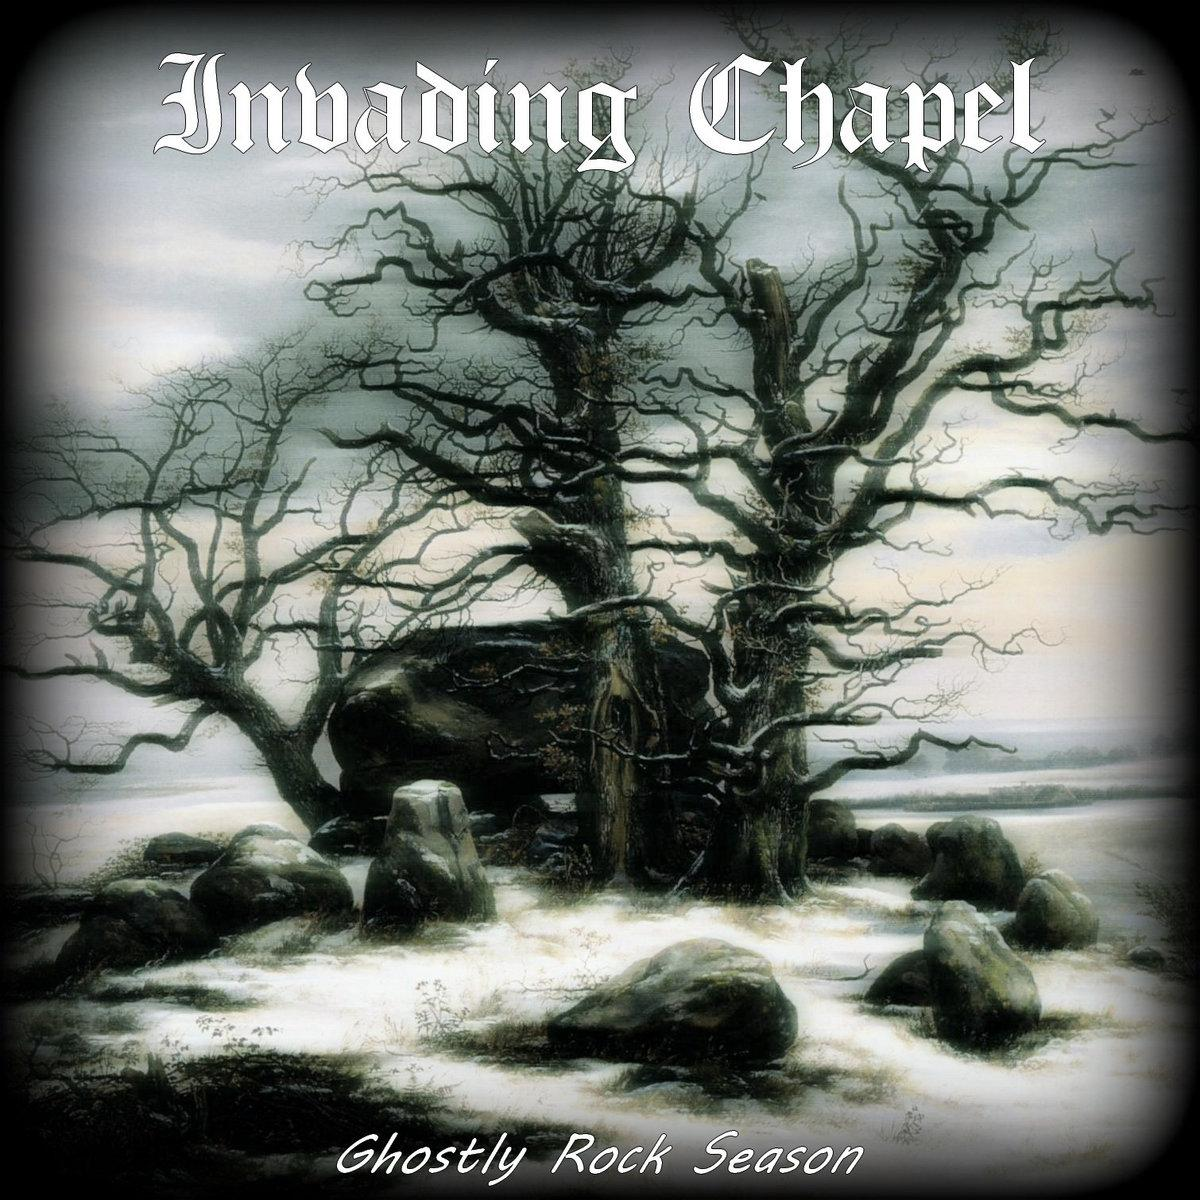 Chronique d'album : Invading Chapel (Metal Gothique / Doom), Ghostly Rock Season (2020)